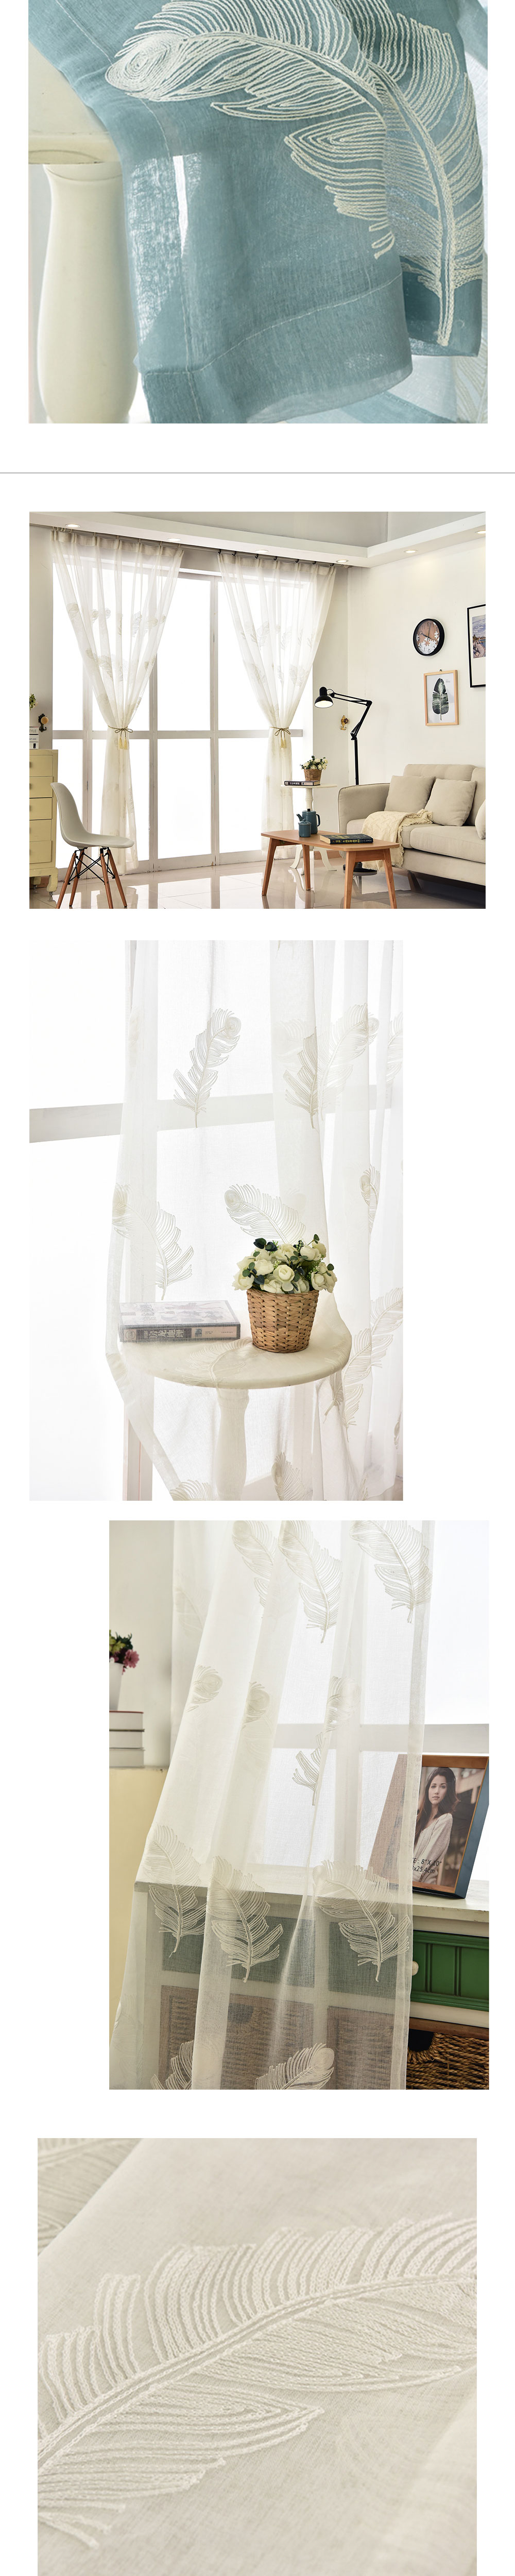 XH047 LOZUJOJU Embroidery feather sheer curtains transparent all match tulle drop for living room bedroom elegant chiffon fabric cloth (2)